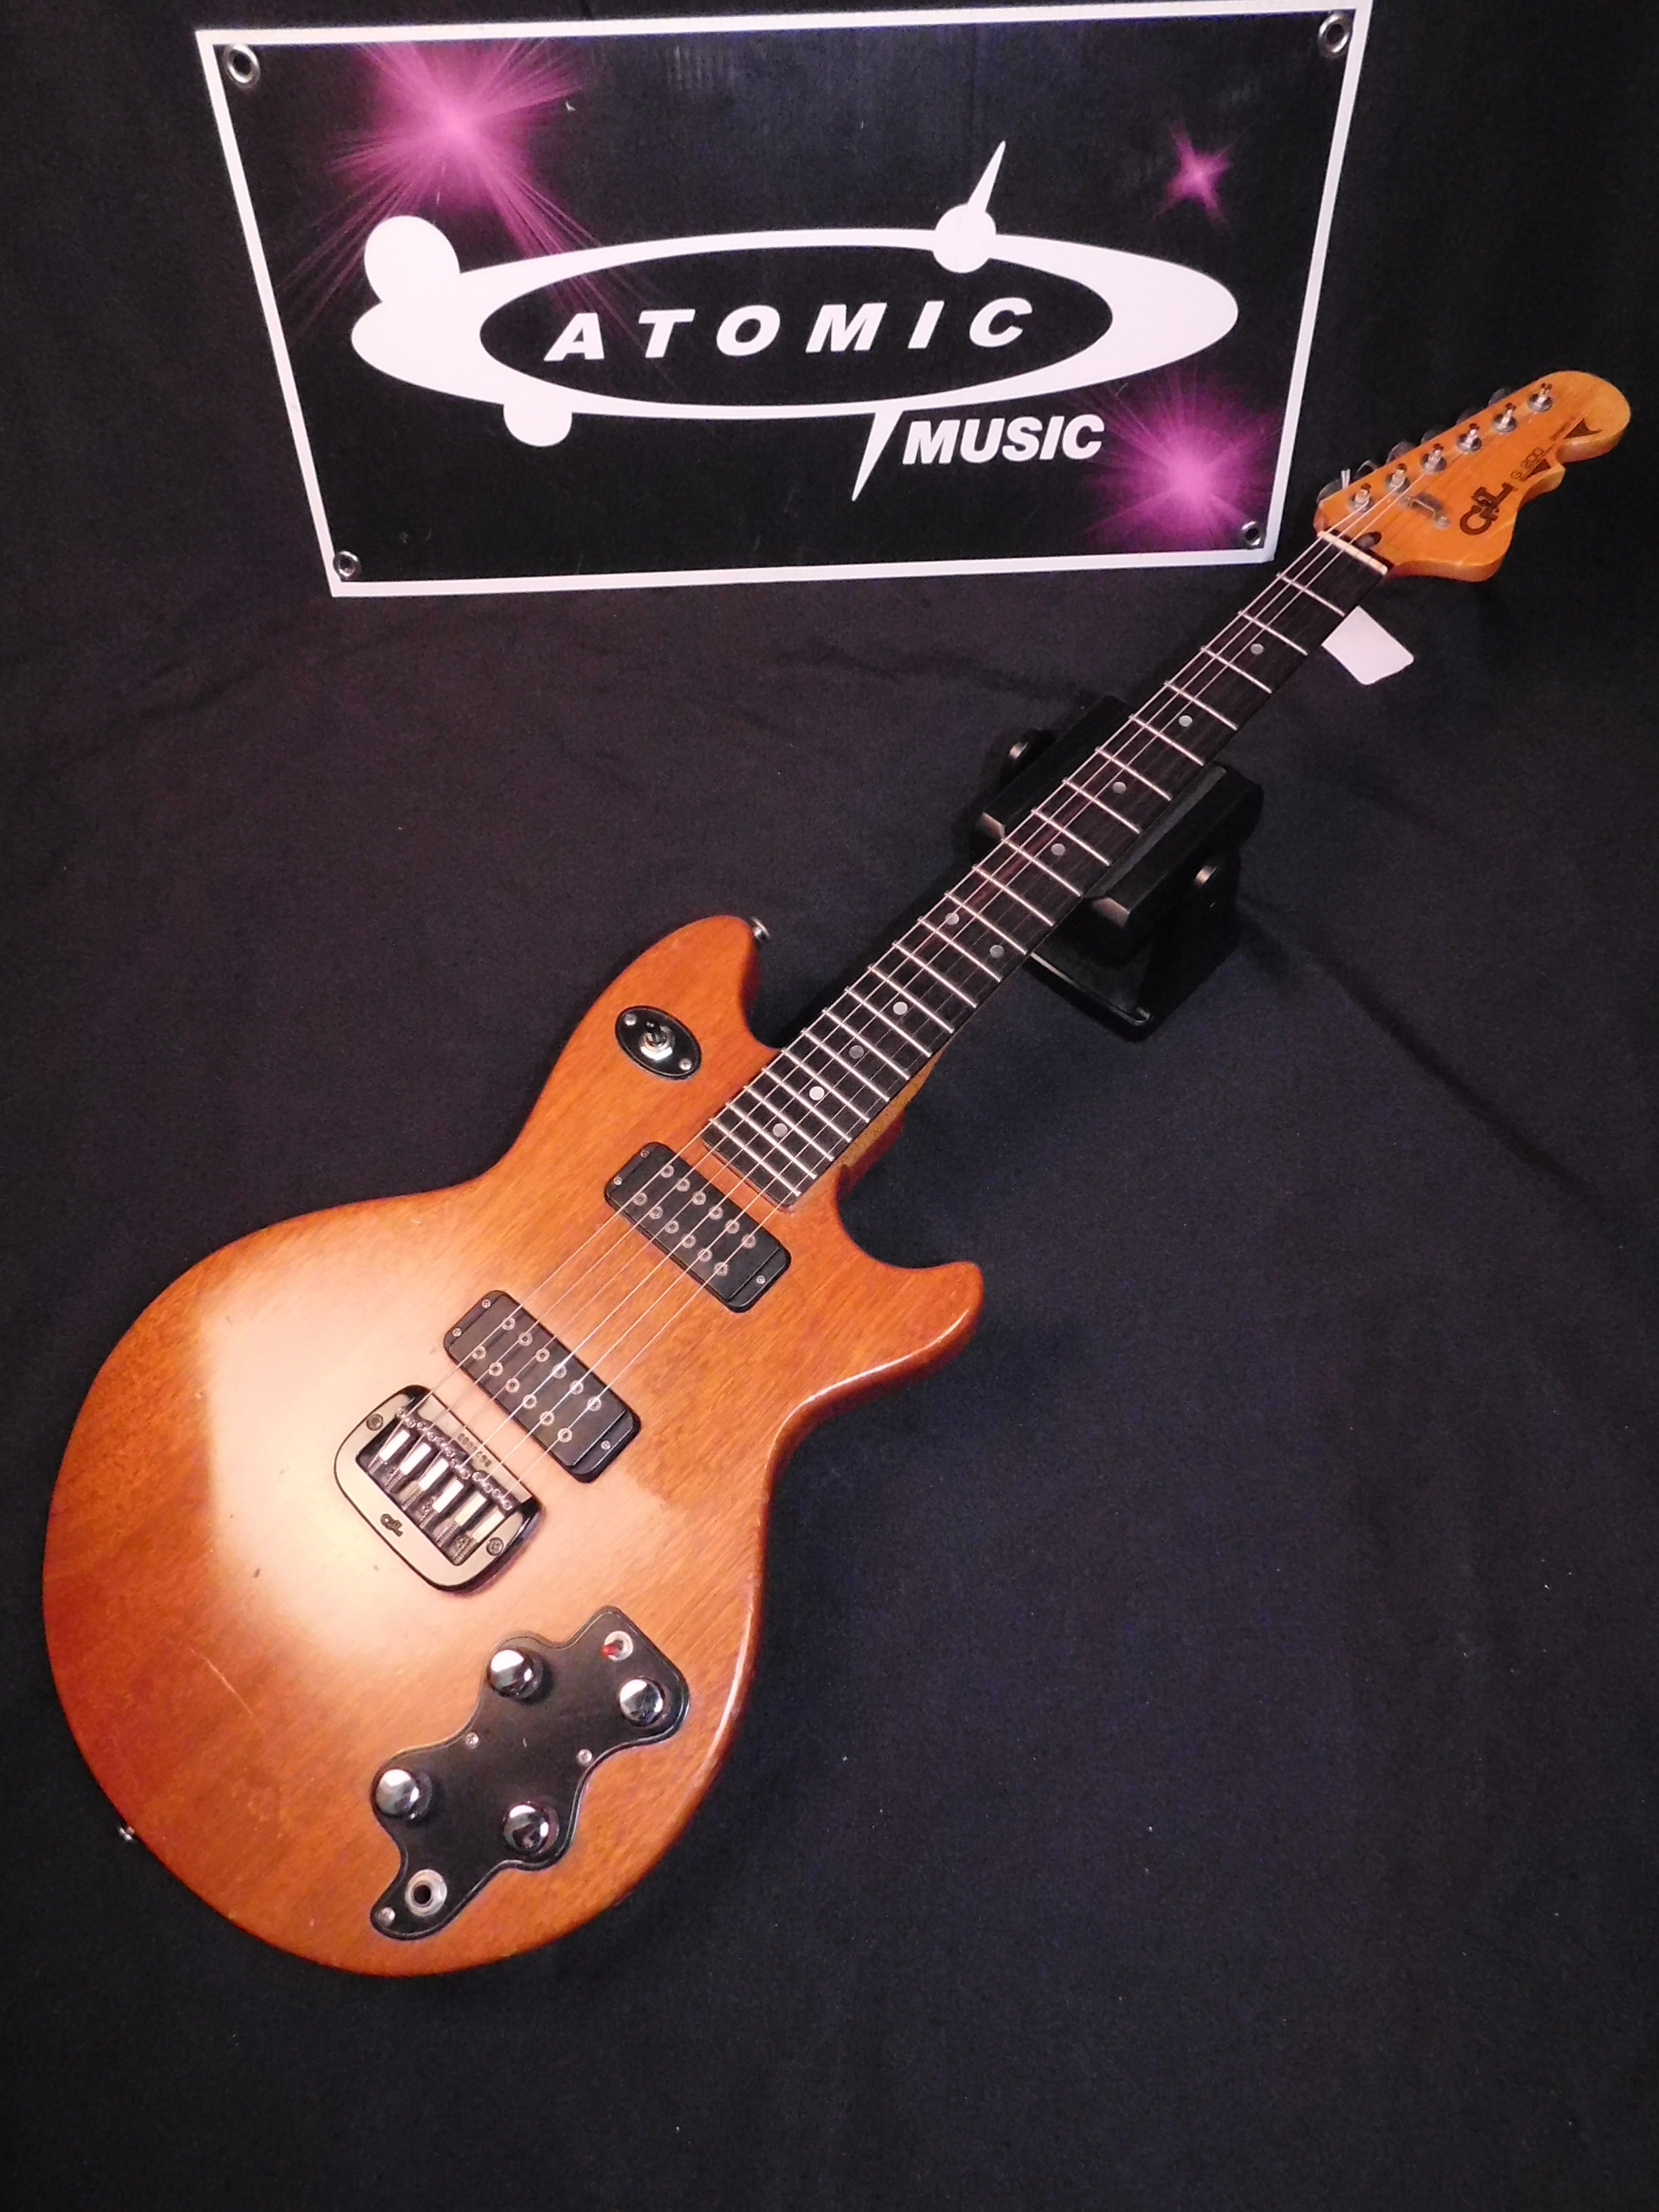 G&L G-200 1981 VERY RARE - EIGHTIES SERIES 1 - 1980'S S 1 G200 WITH CASE!